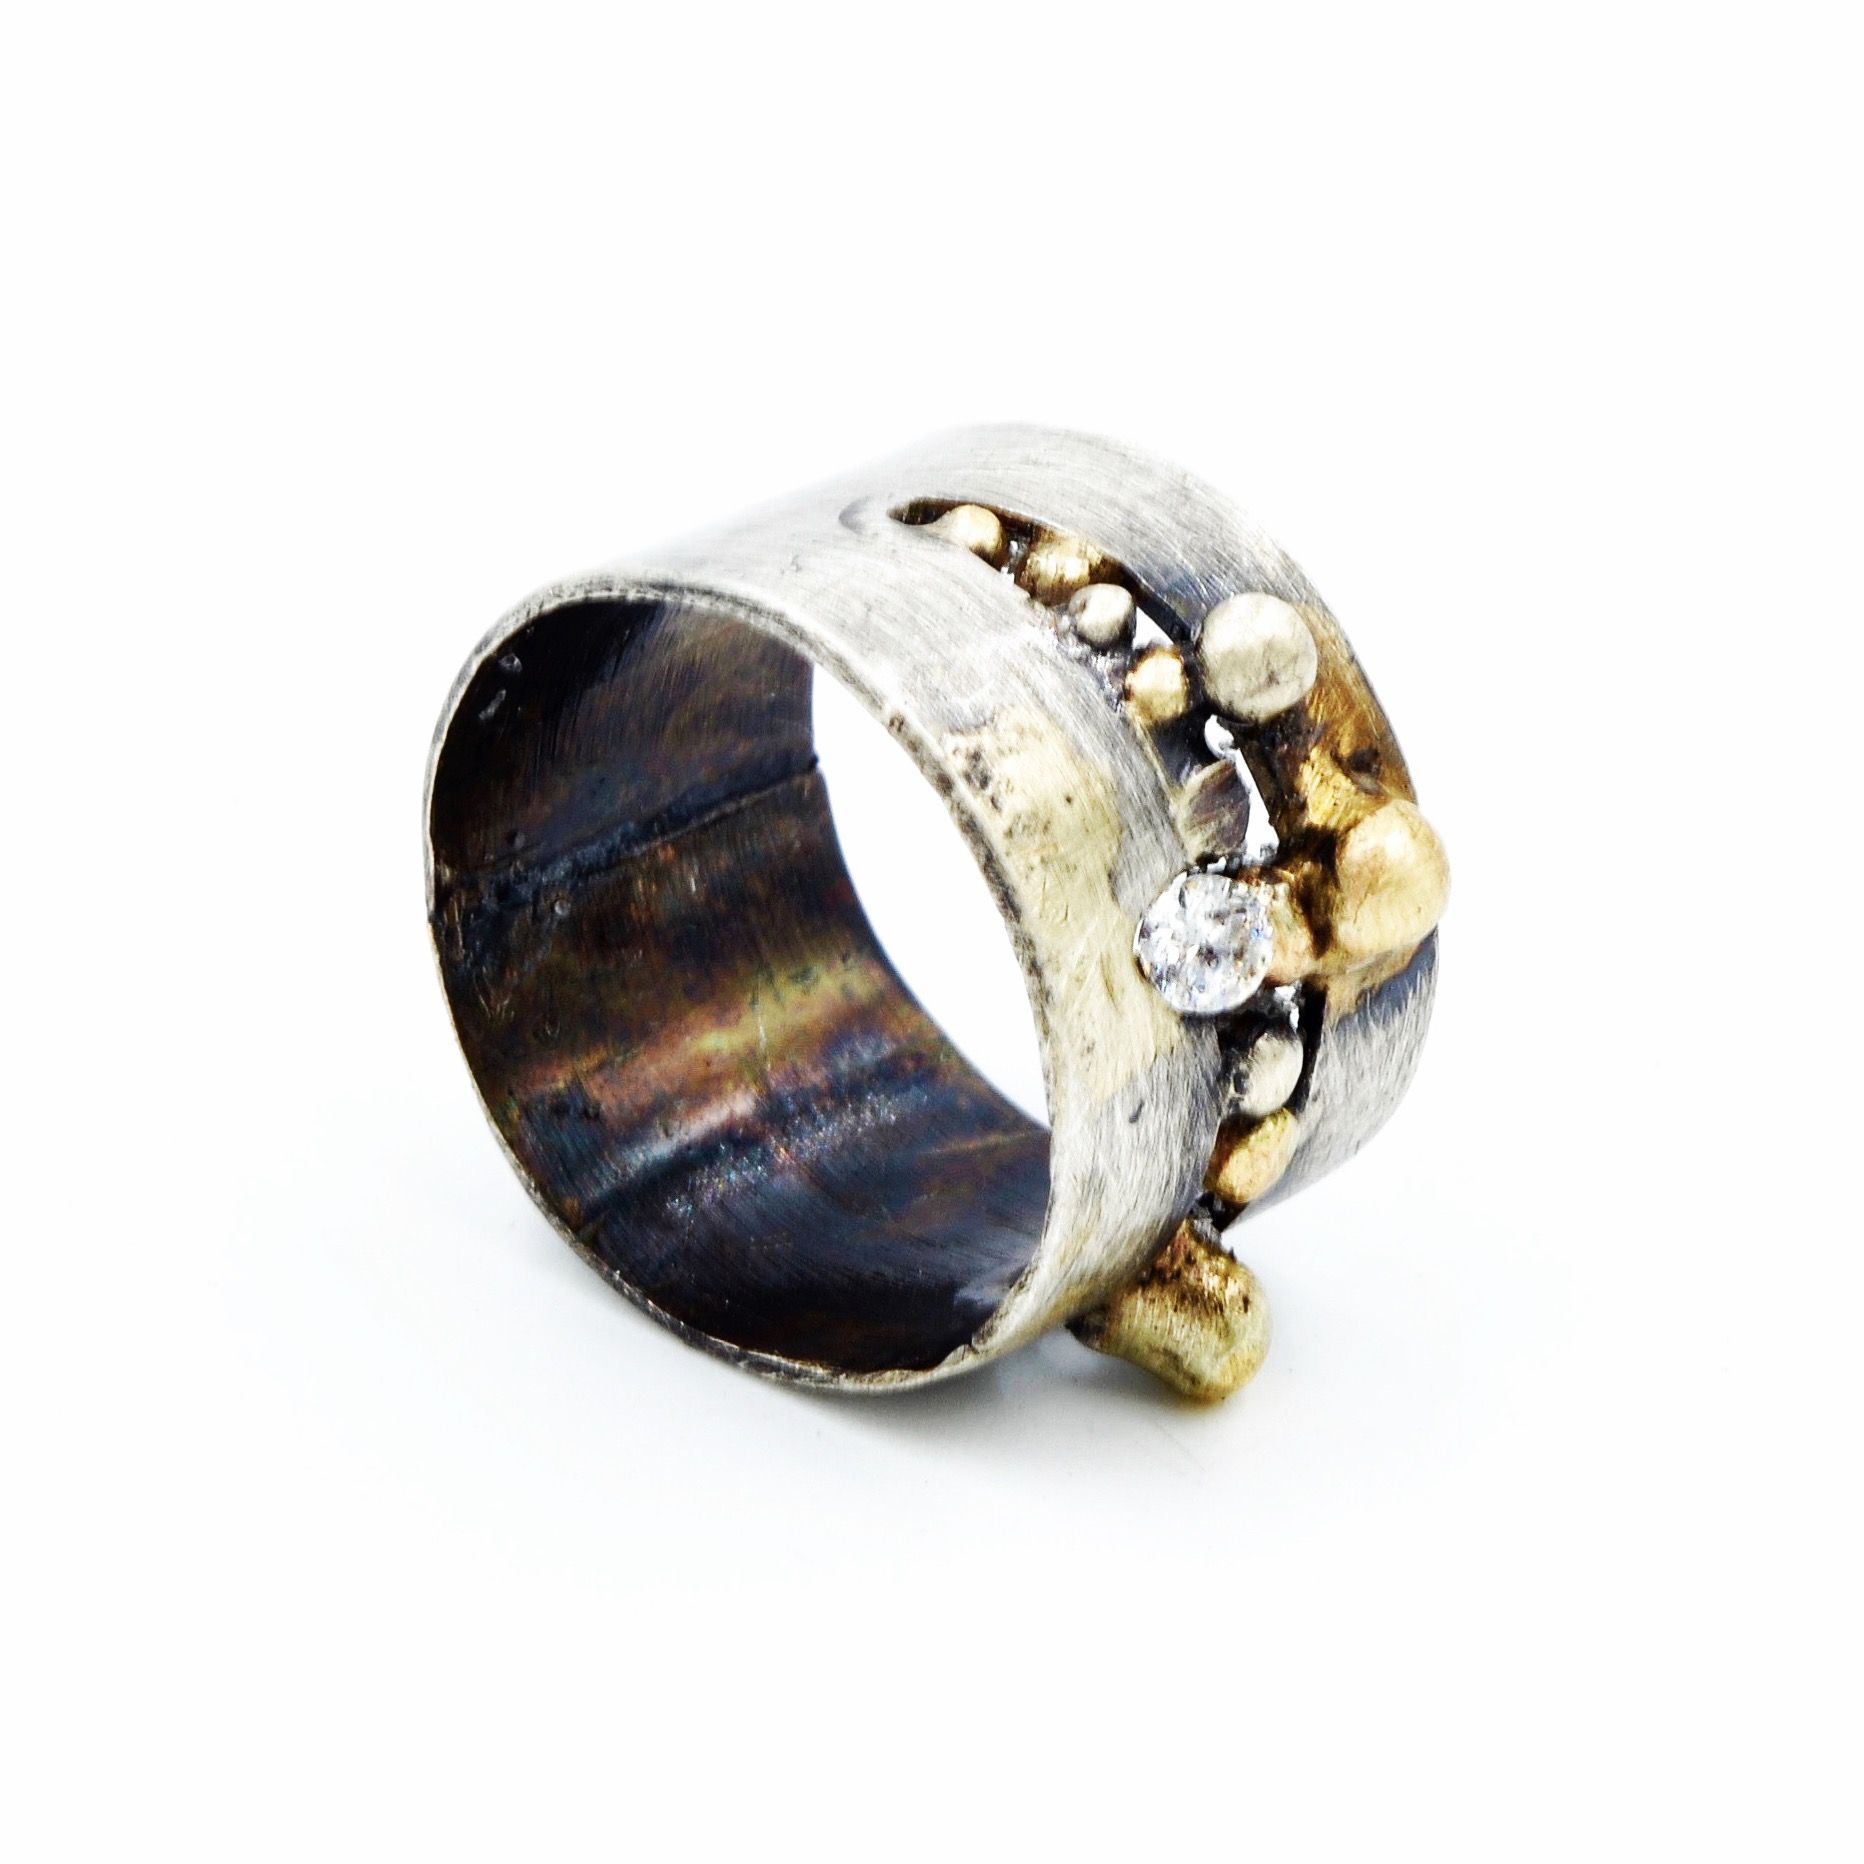 Oxidized and aged Sterling silver and 18 carat Gold ring, set with silver and gold drops and a Swarovski CZ